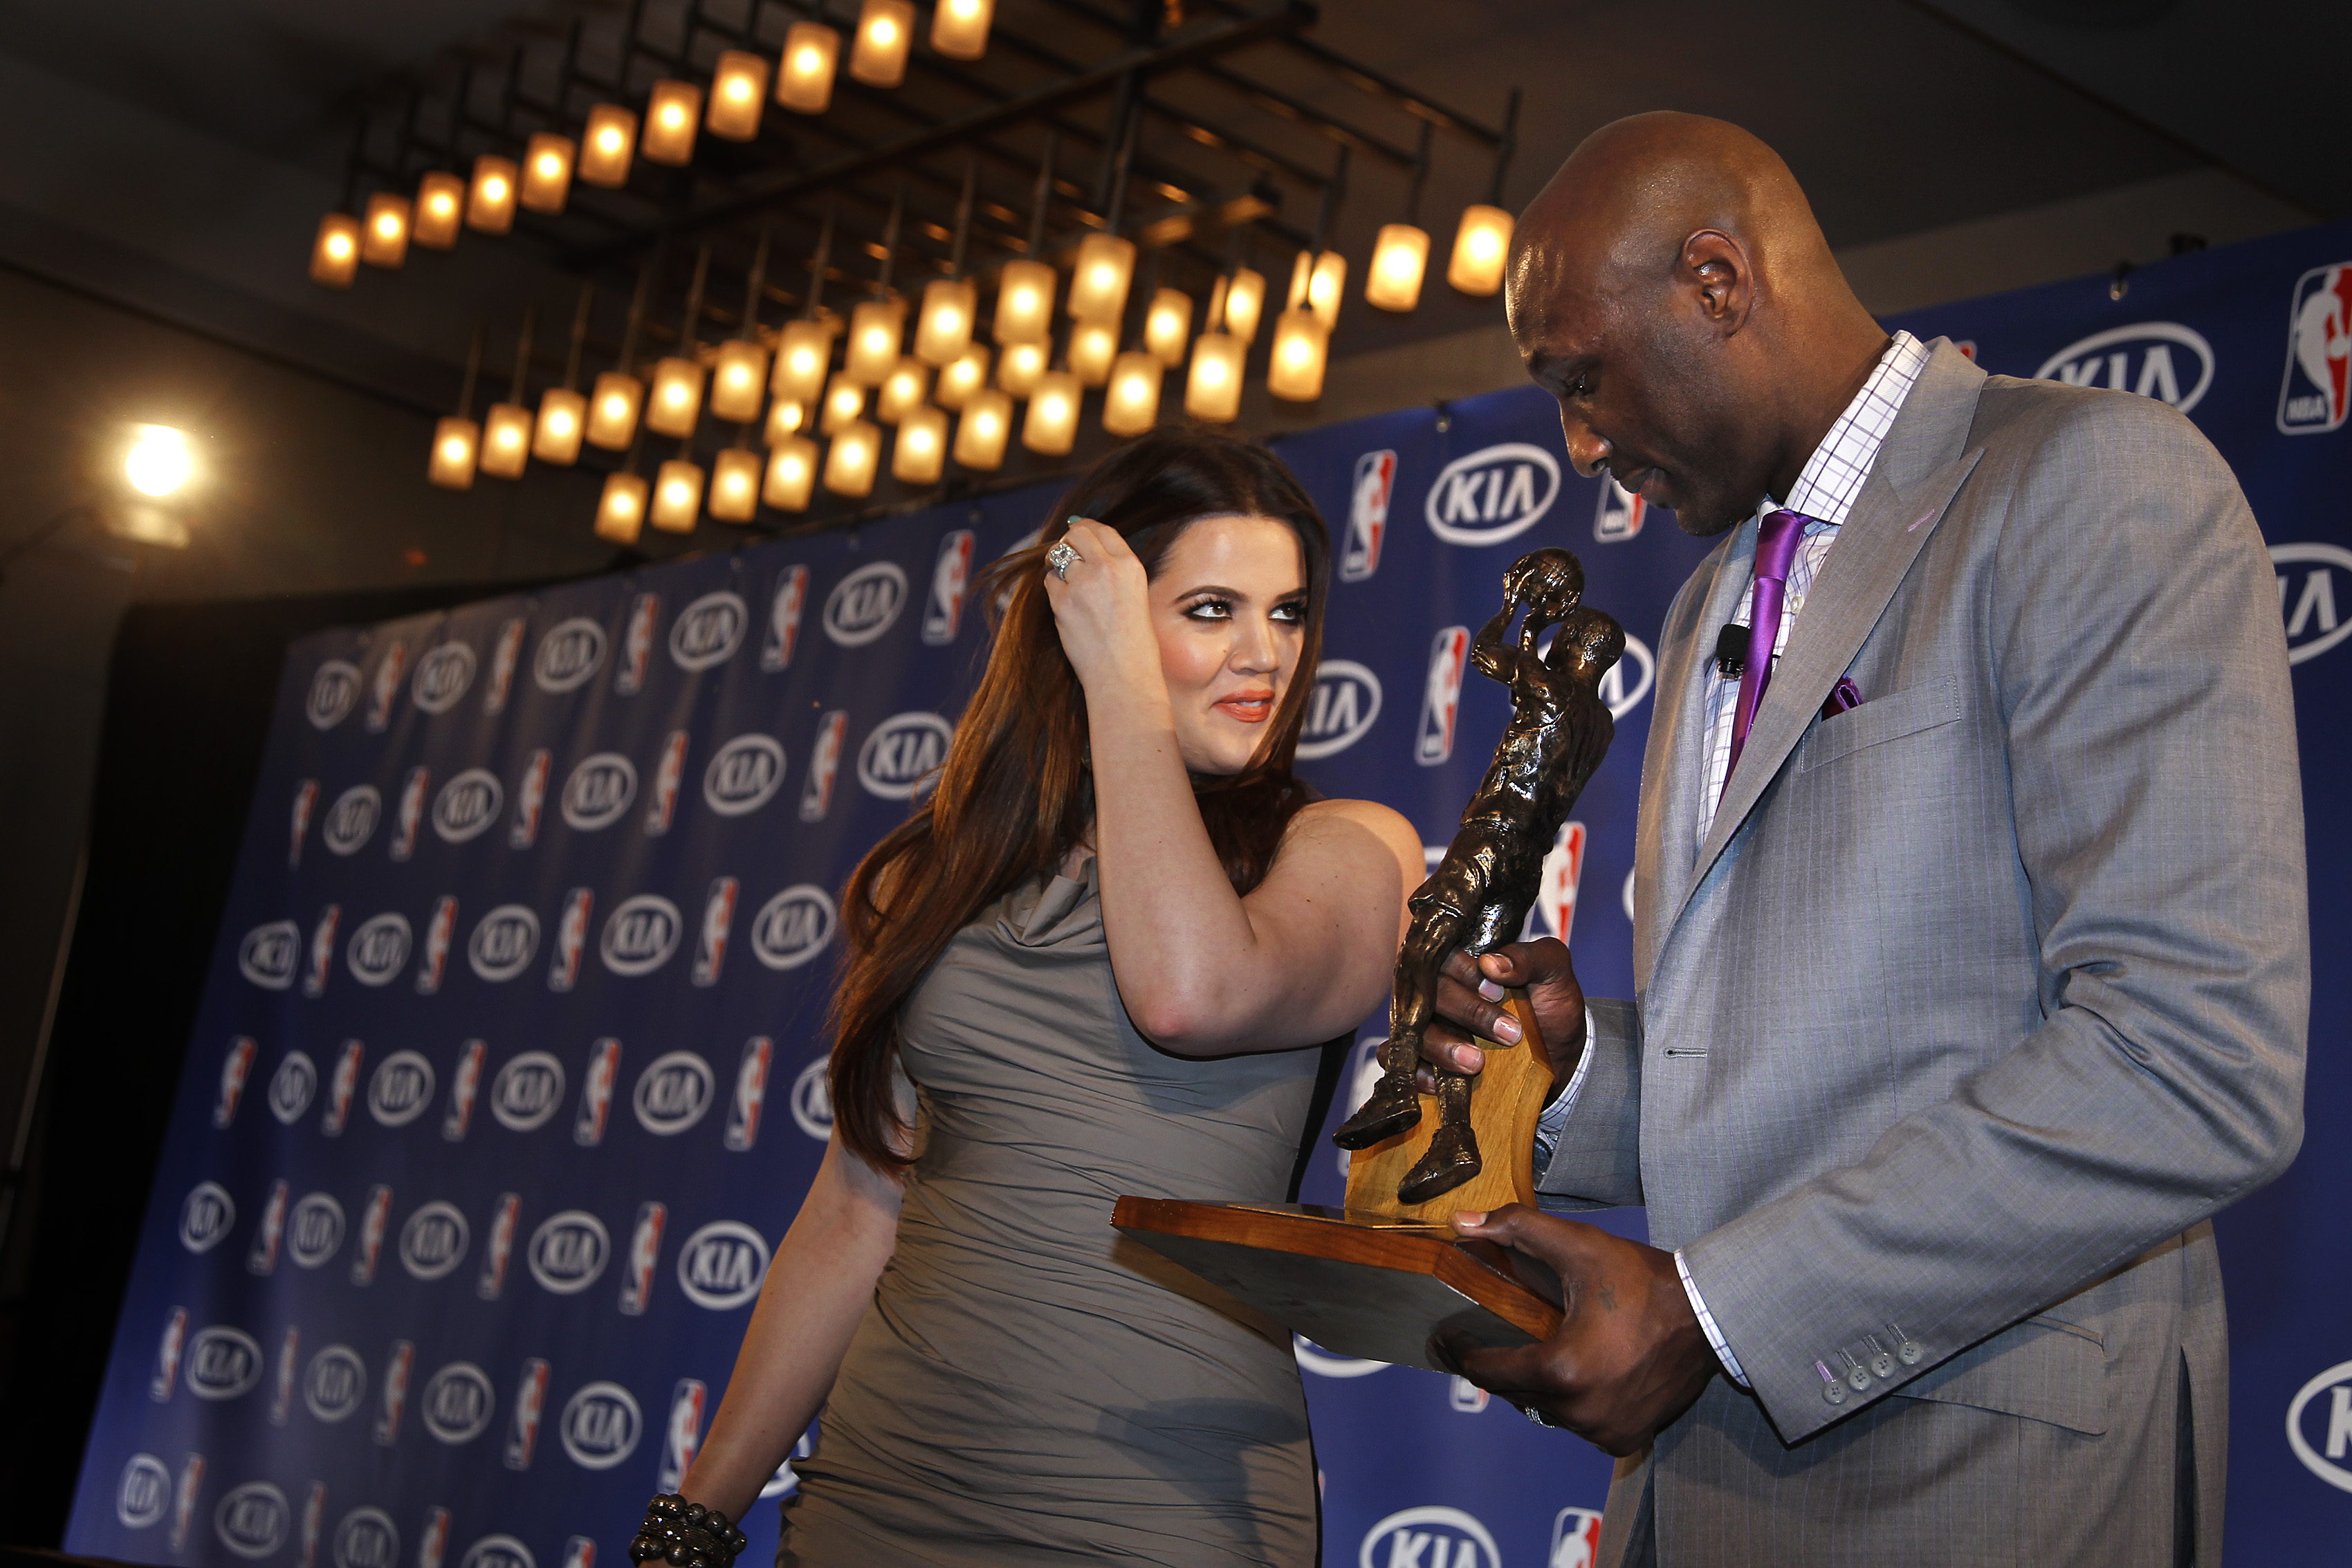 Khloe Kardashian watches her husband, Lamar Odom, a forward for the Los Angeles Lakers, who receive